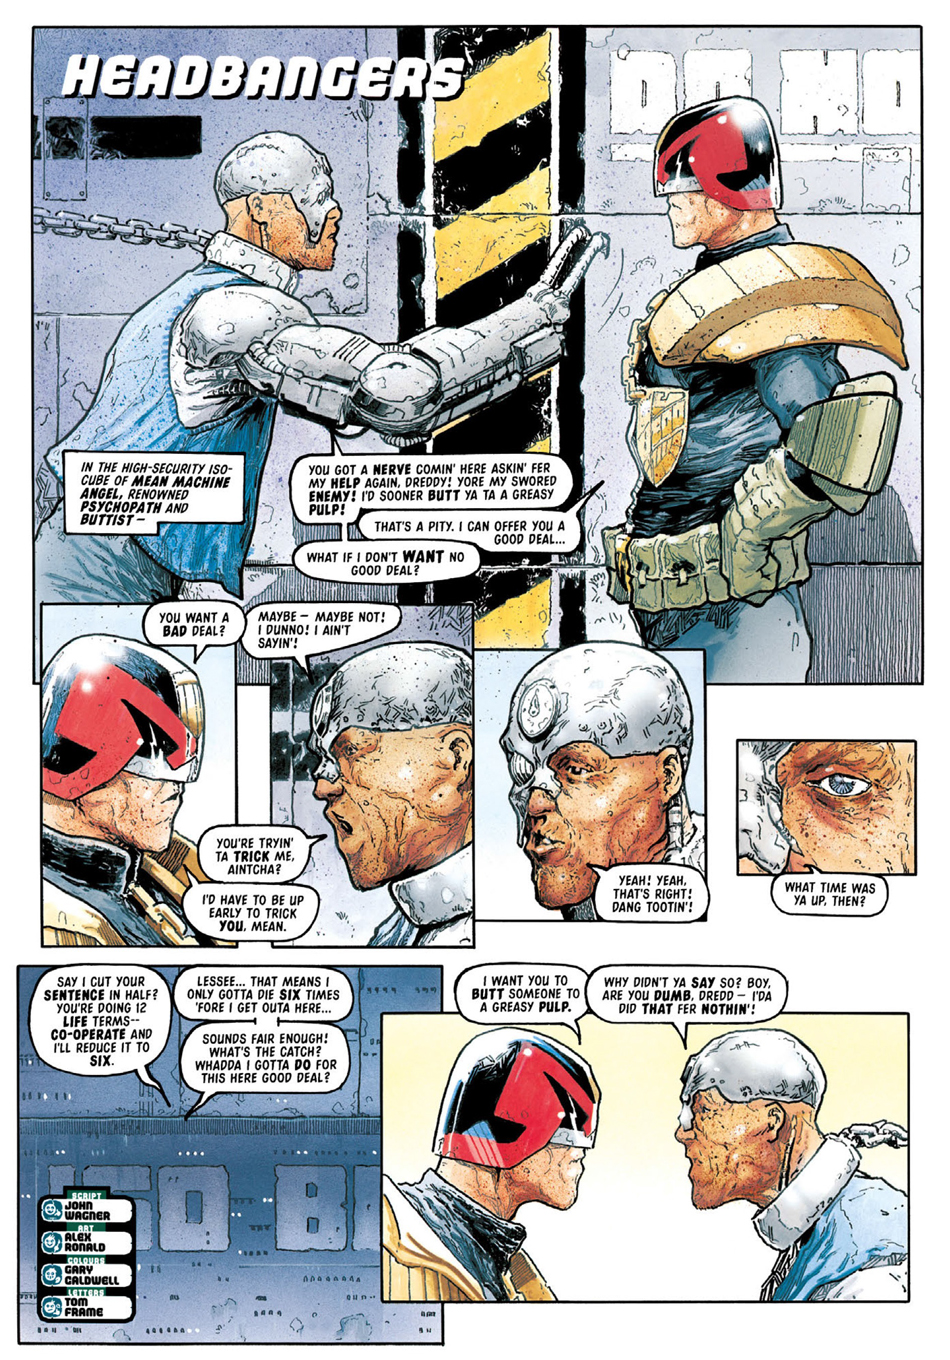 Judge Dredd Case Files 28 Review